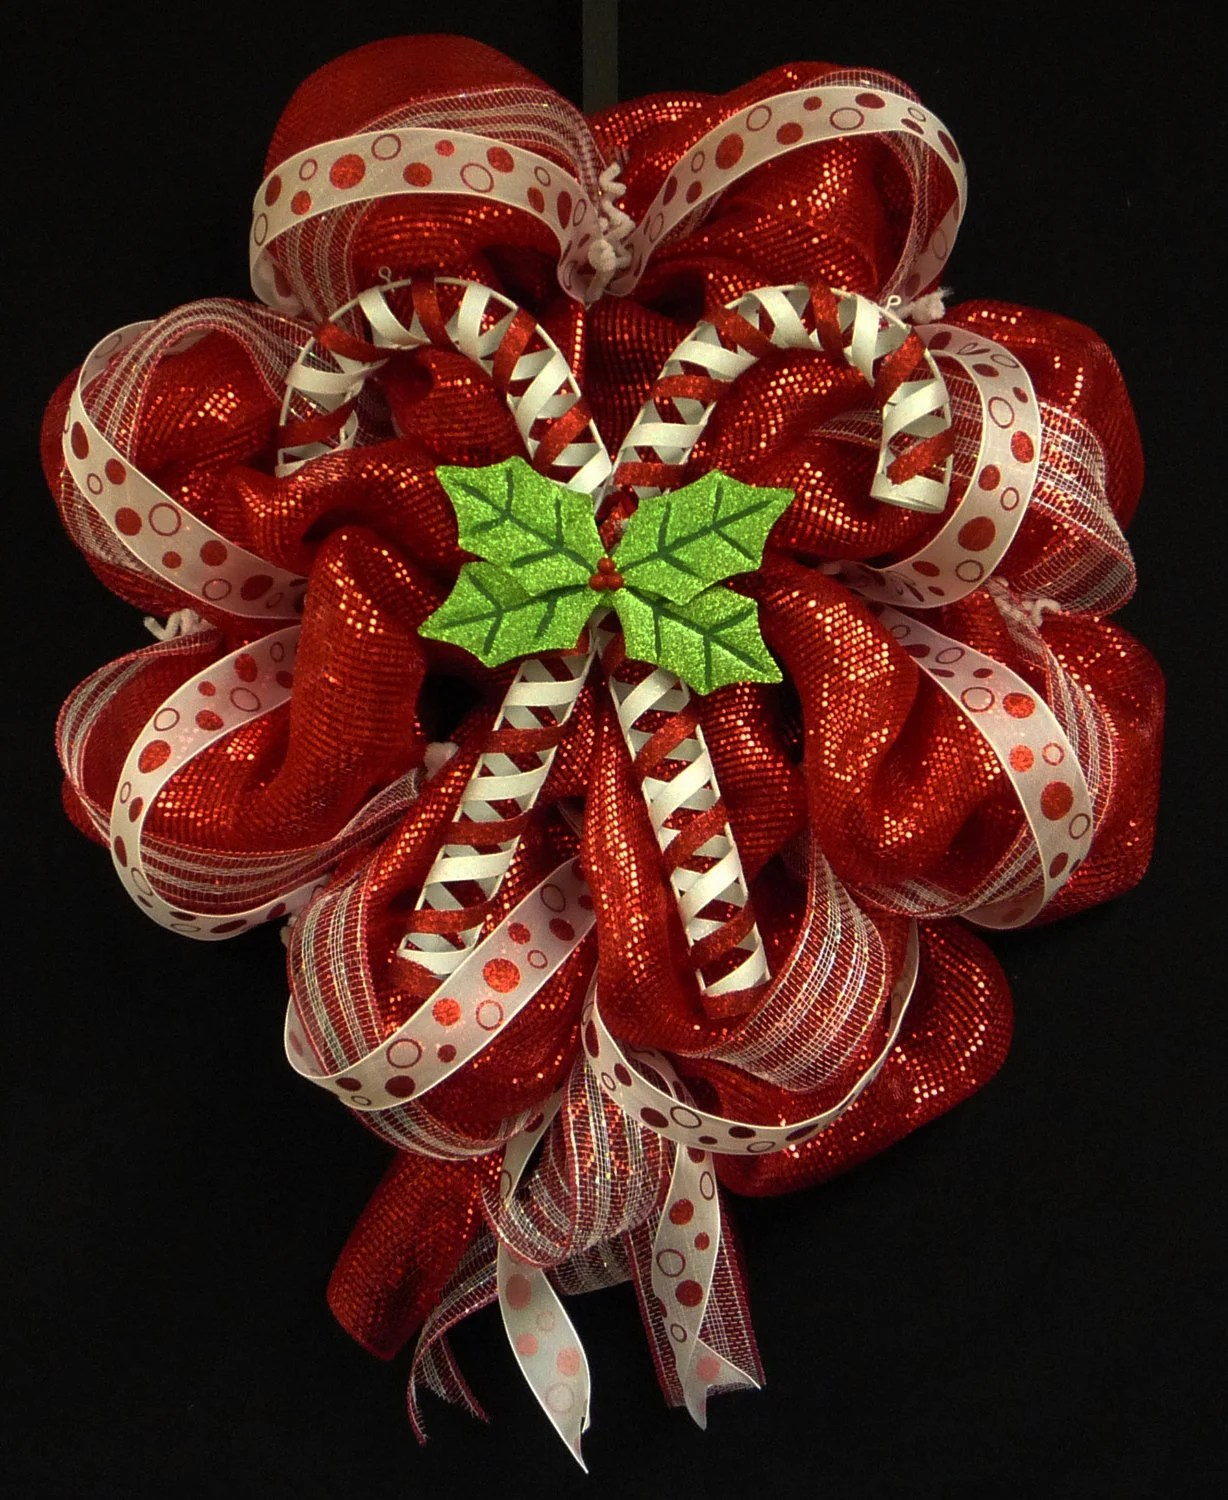 Candy Cane Wreath Christmas Wreath Red White Wreaths Poly